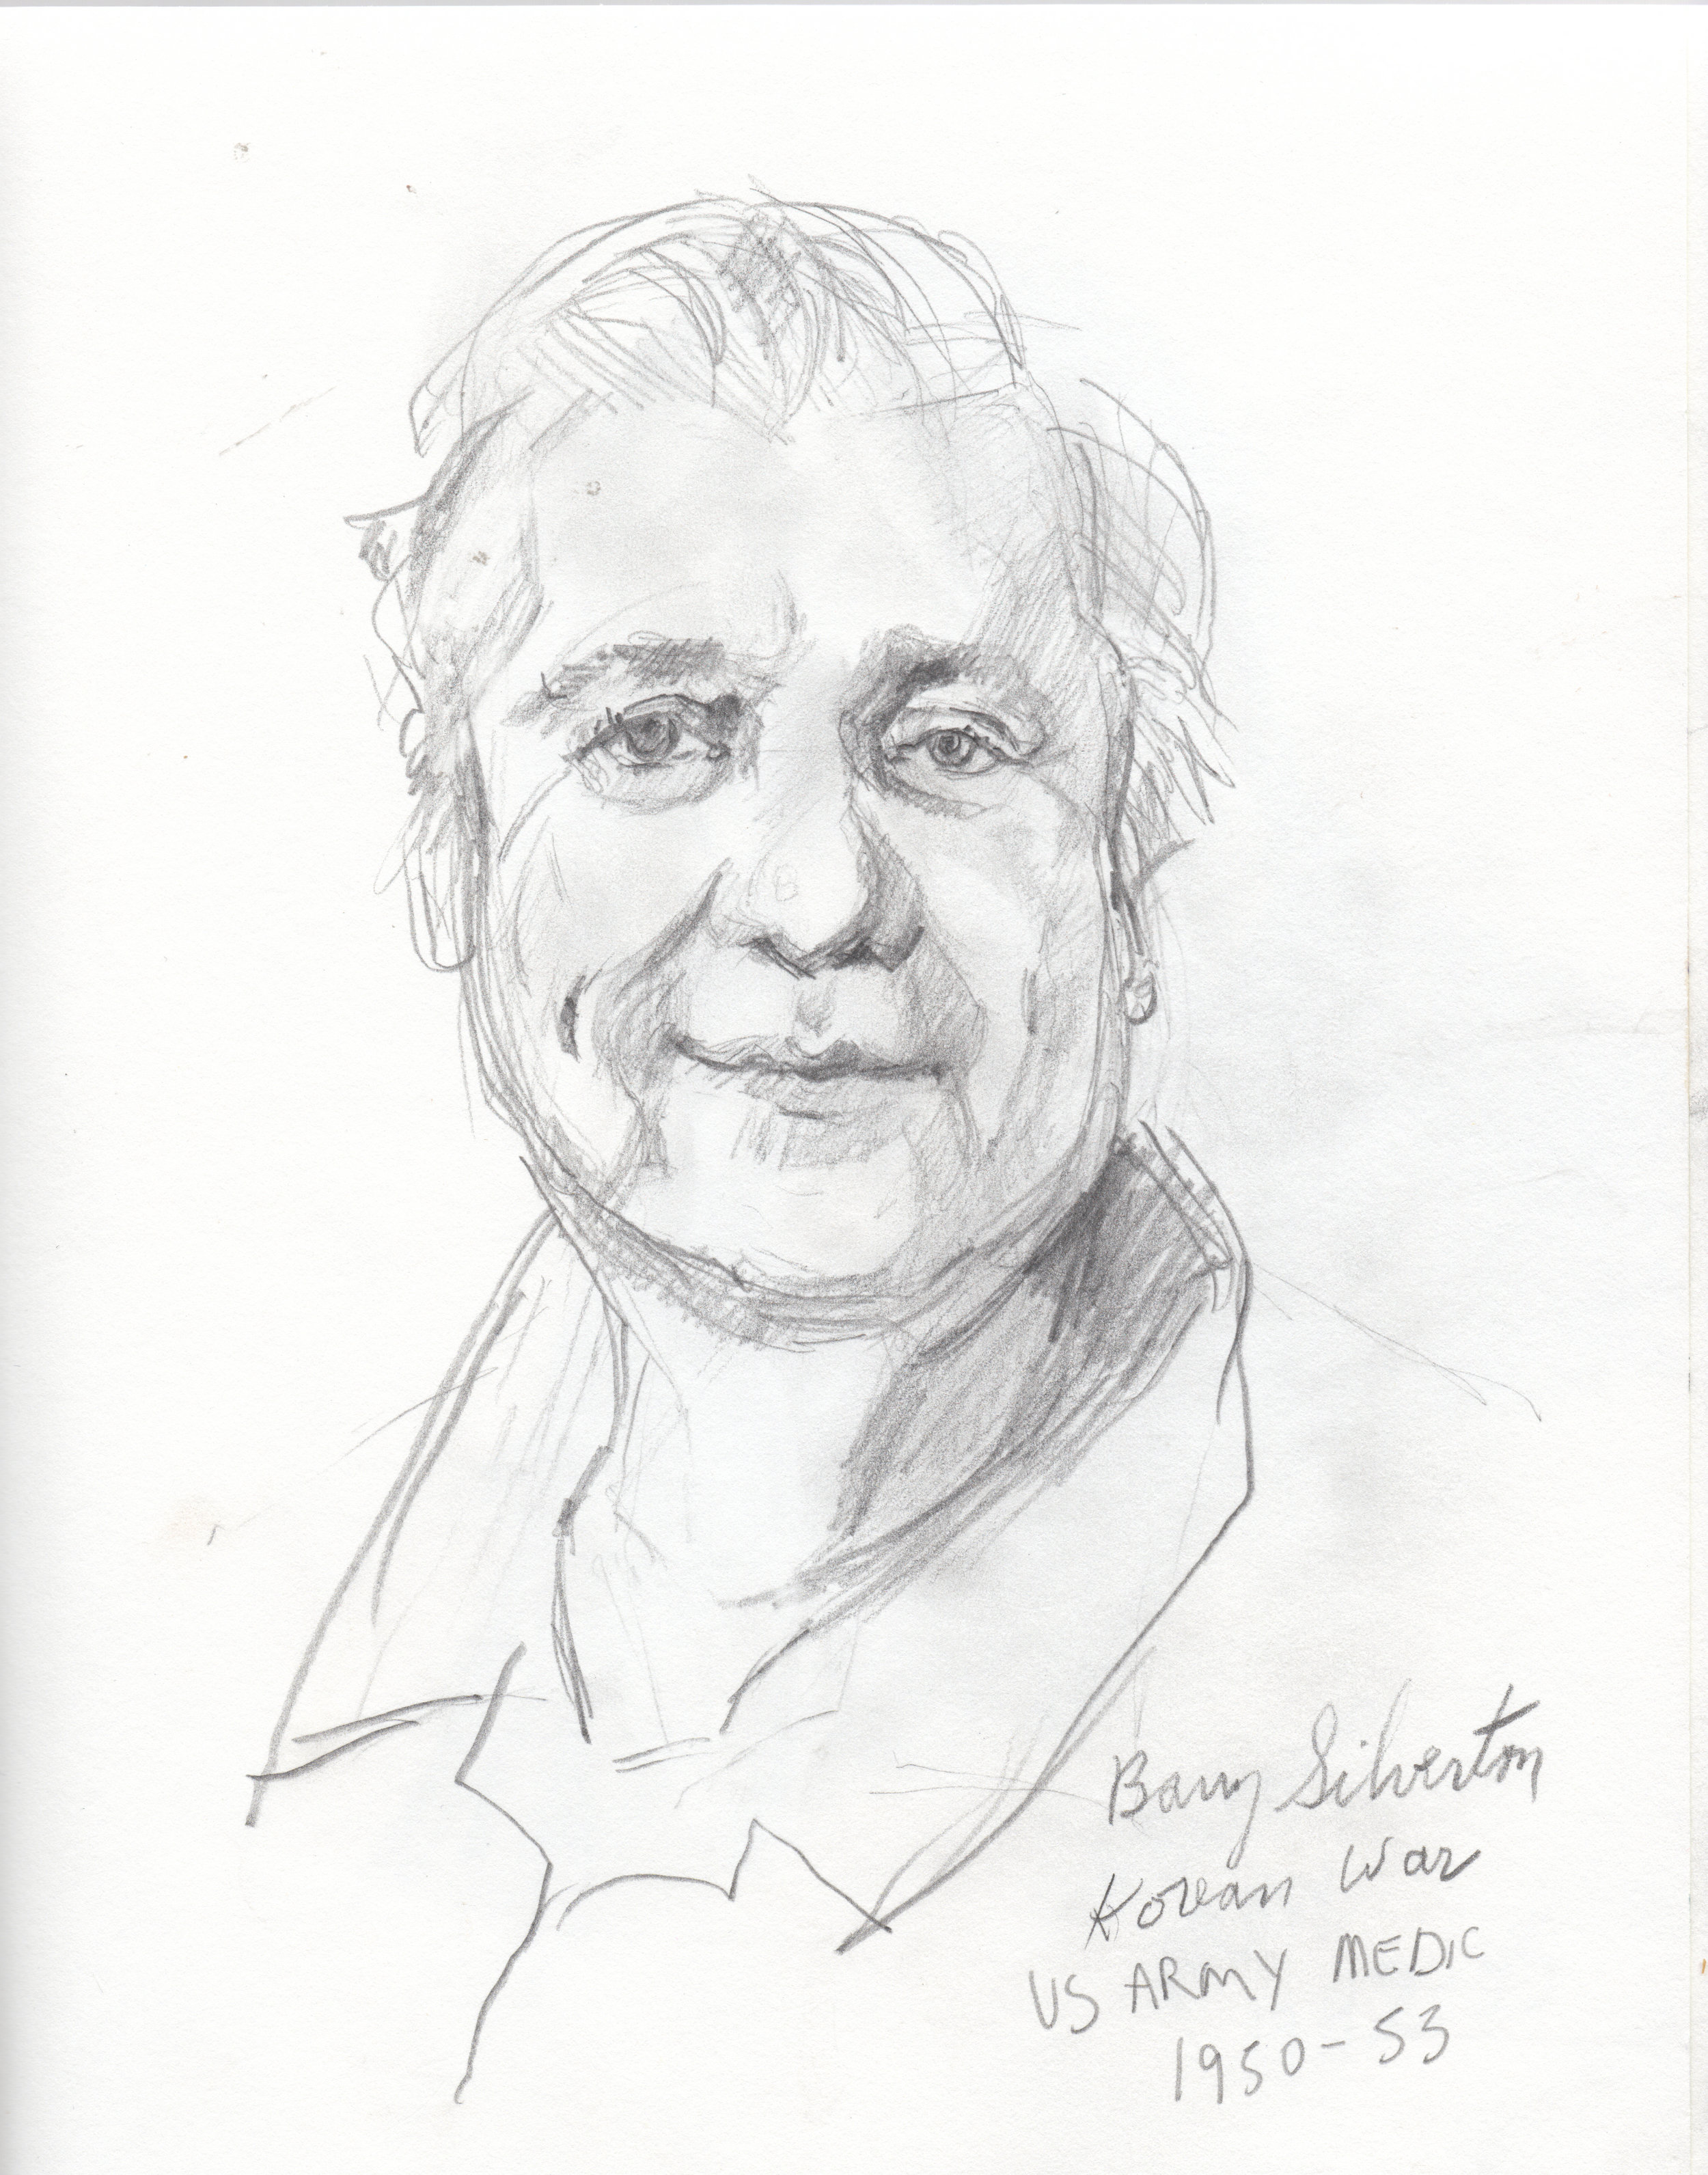 Barry Silverton